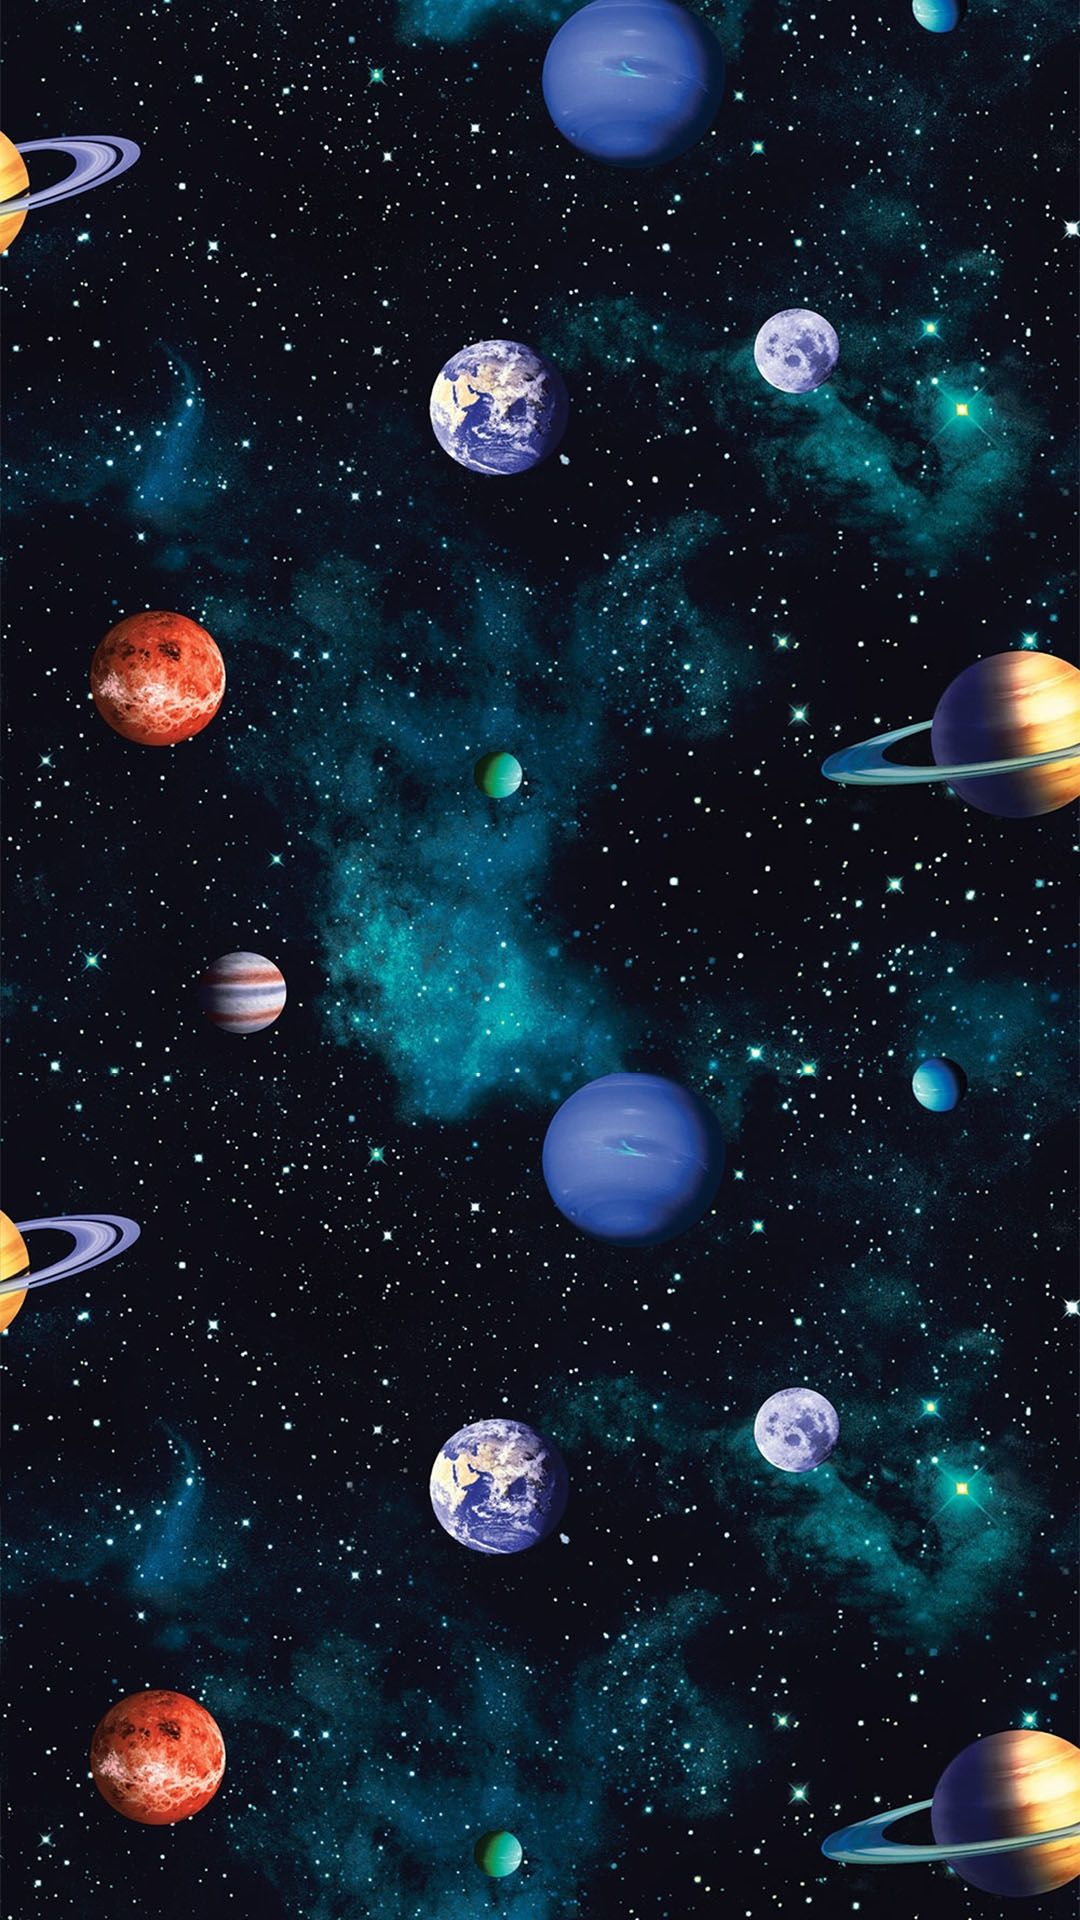 Cosmos Space Wallpaper Charcoal In 2020 Planets Wallpaper Love